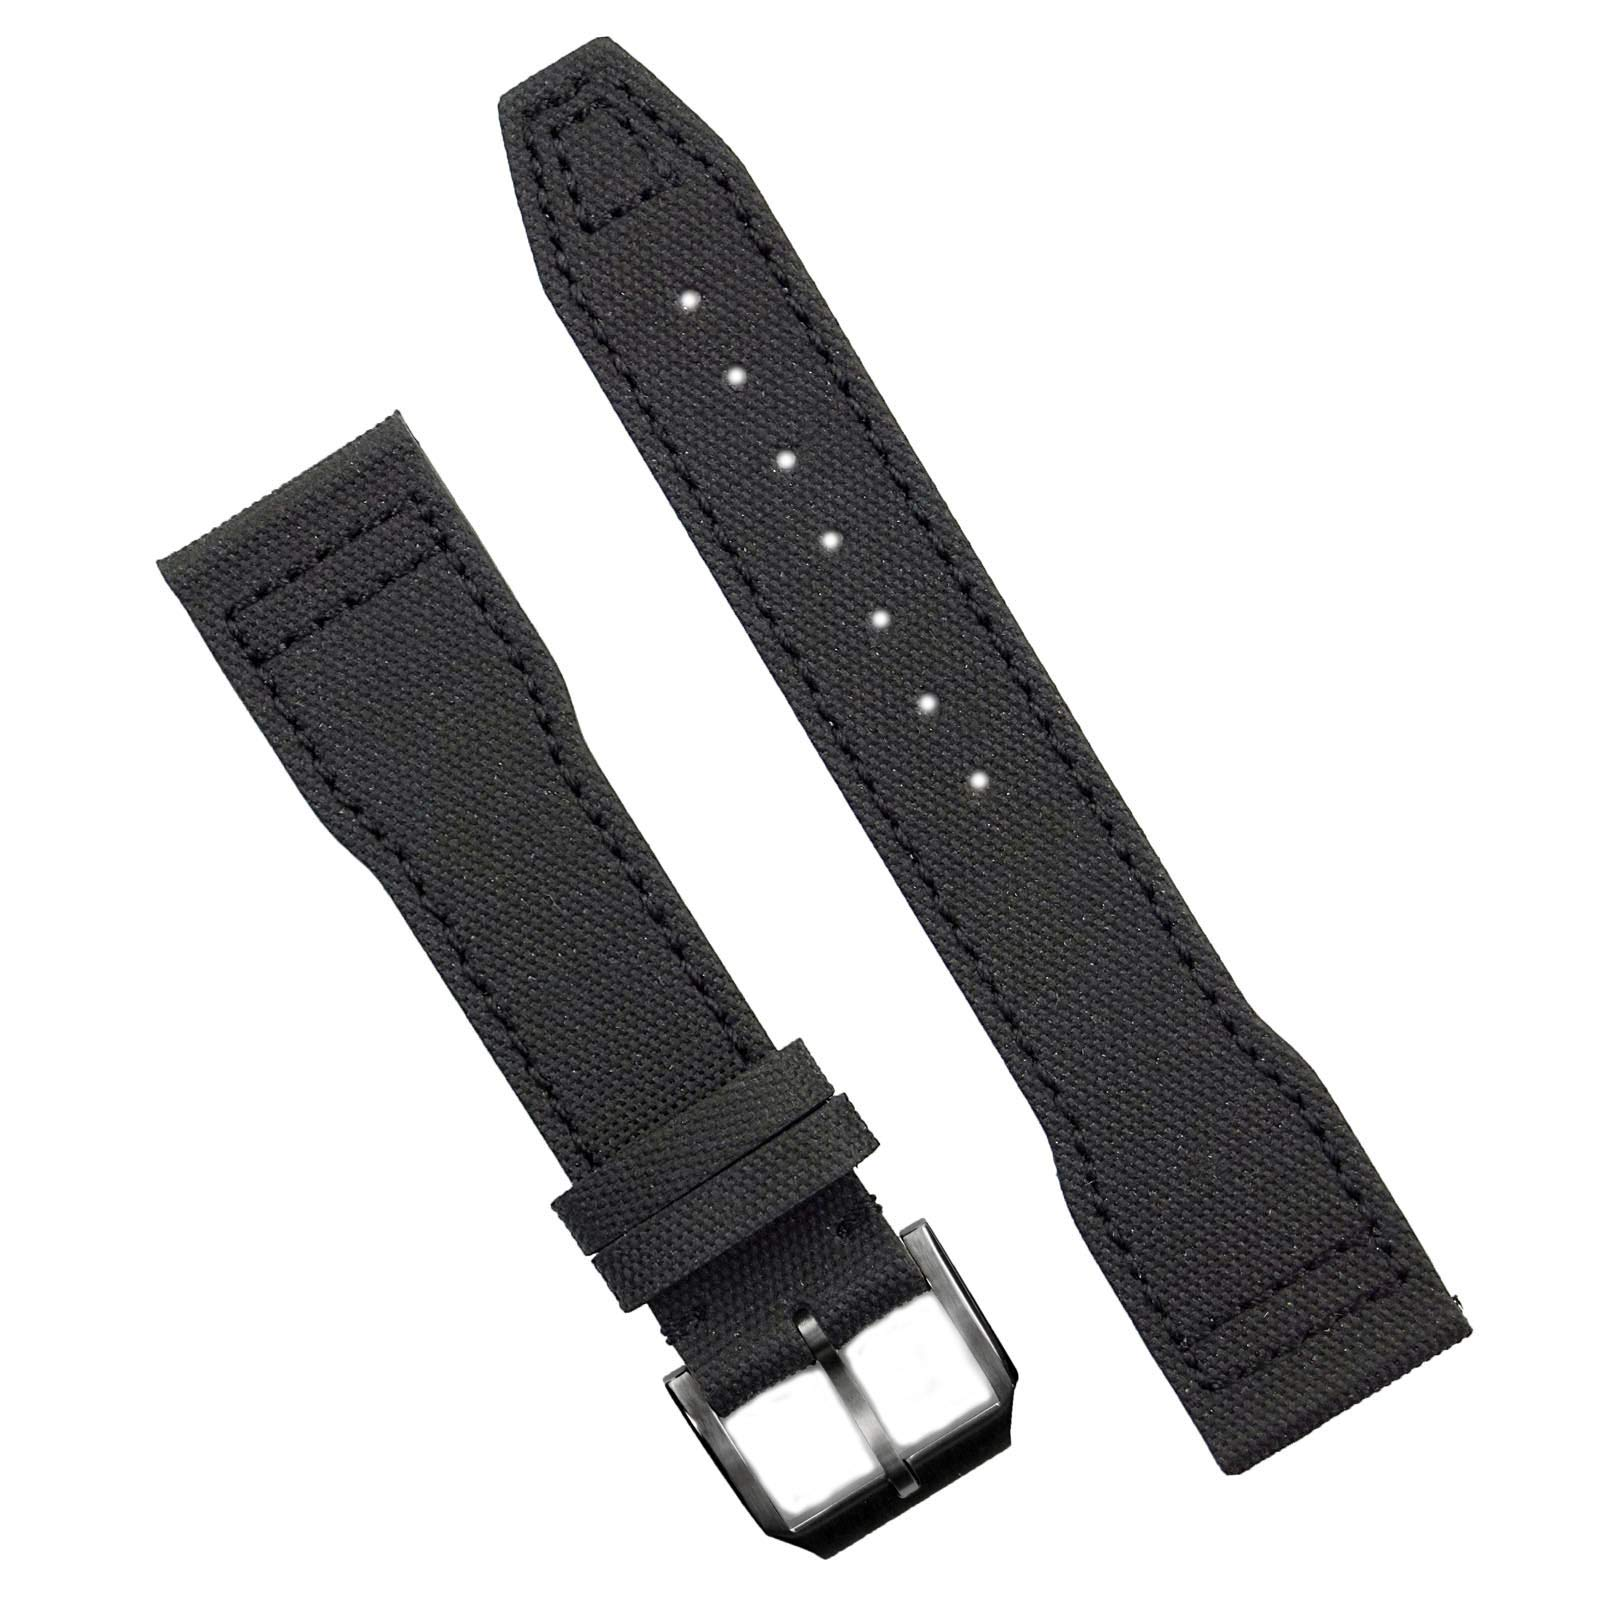 B & R Bands 21mm Black Tactical IWC Pilot Style Watch Band Strap